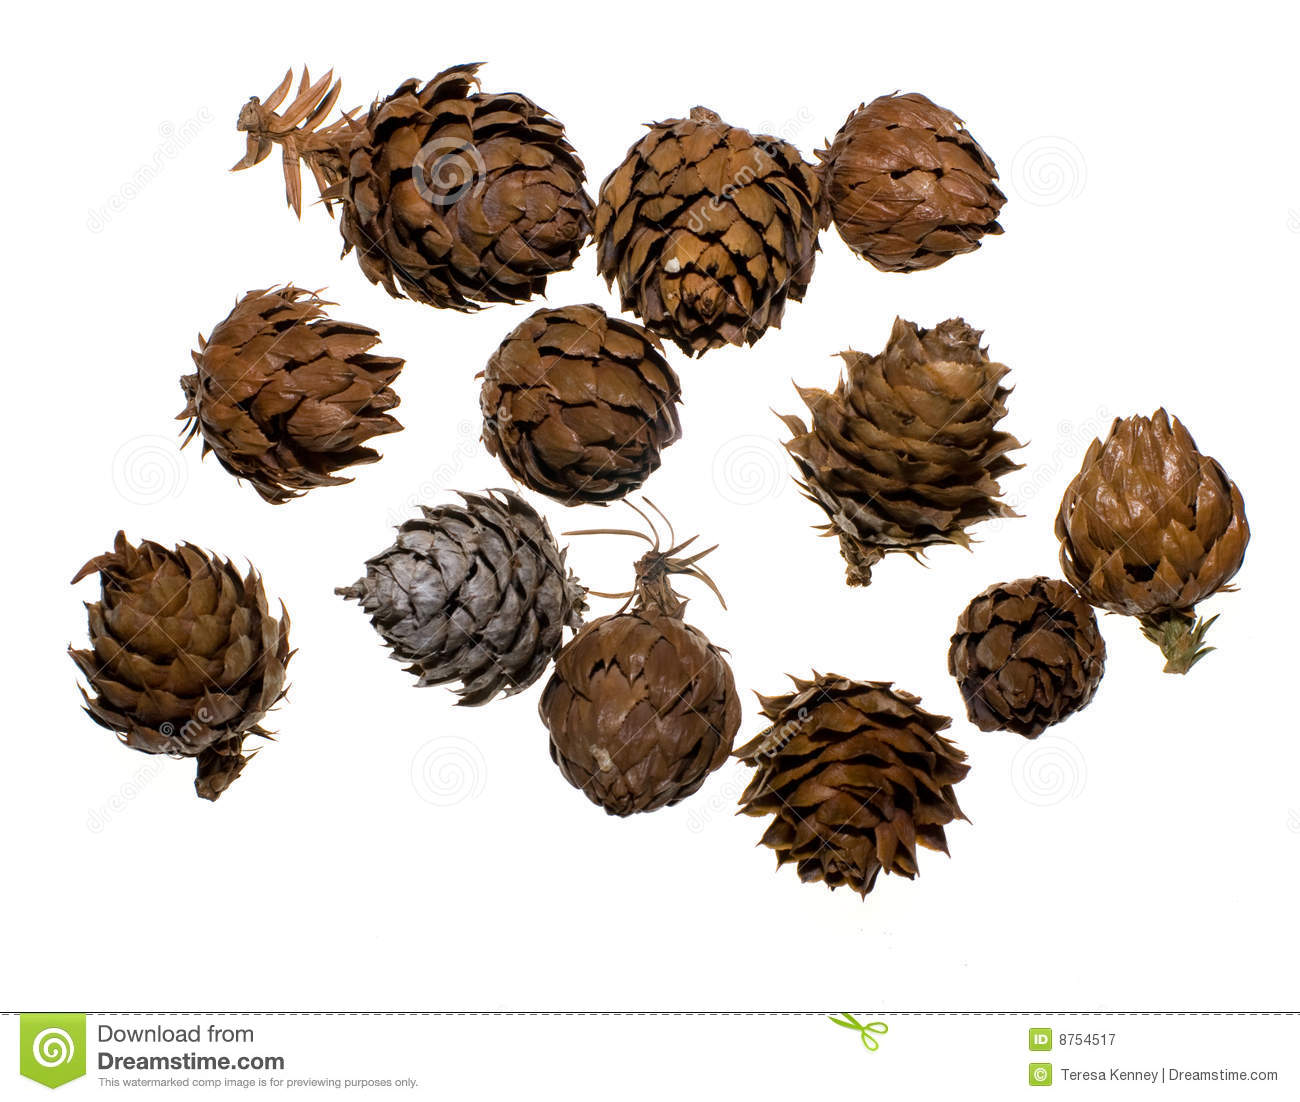 China Fir Tree Cones Stock Image. Image Of Large, Sizes